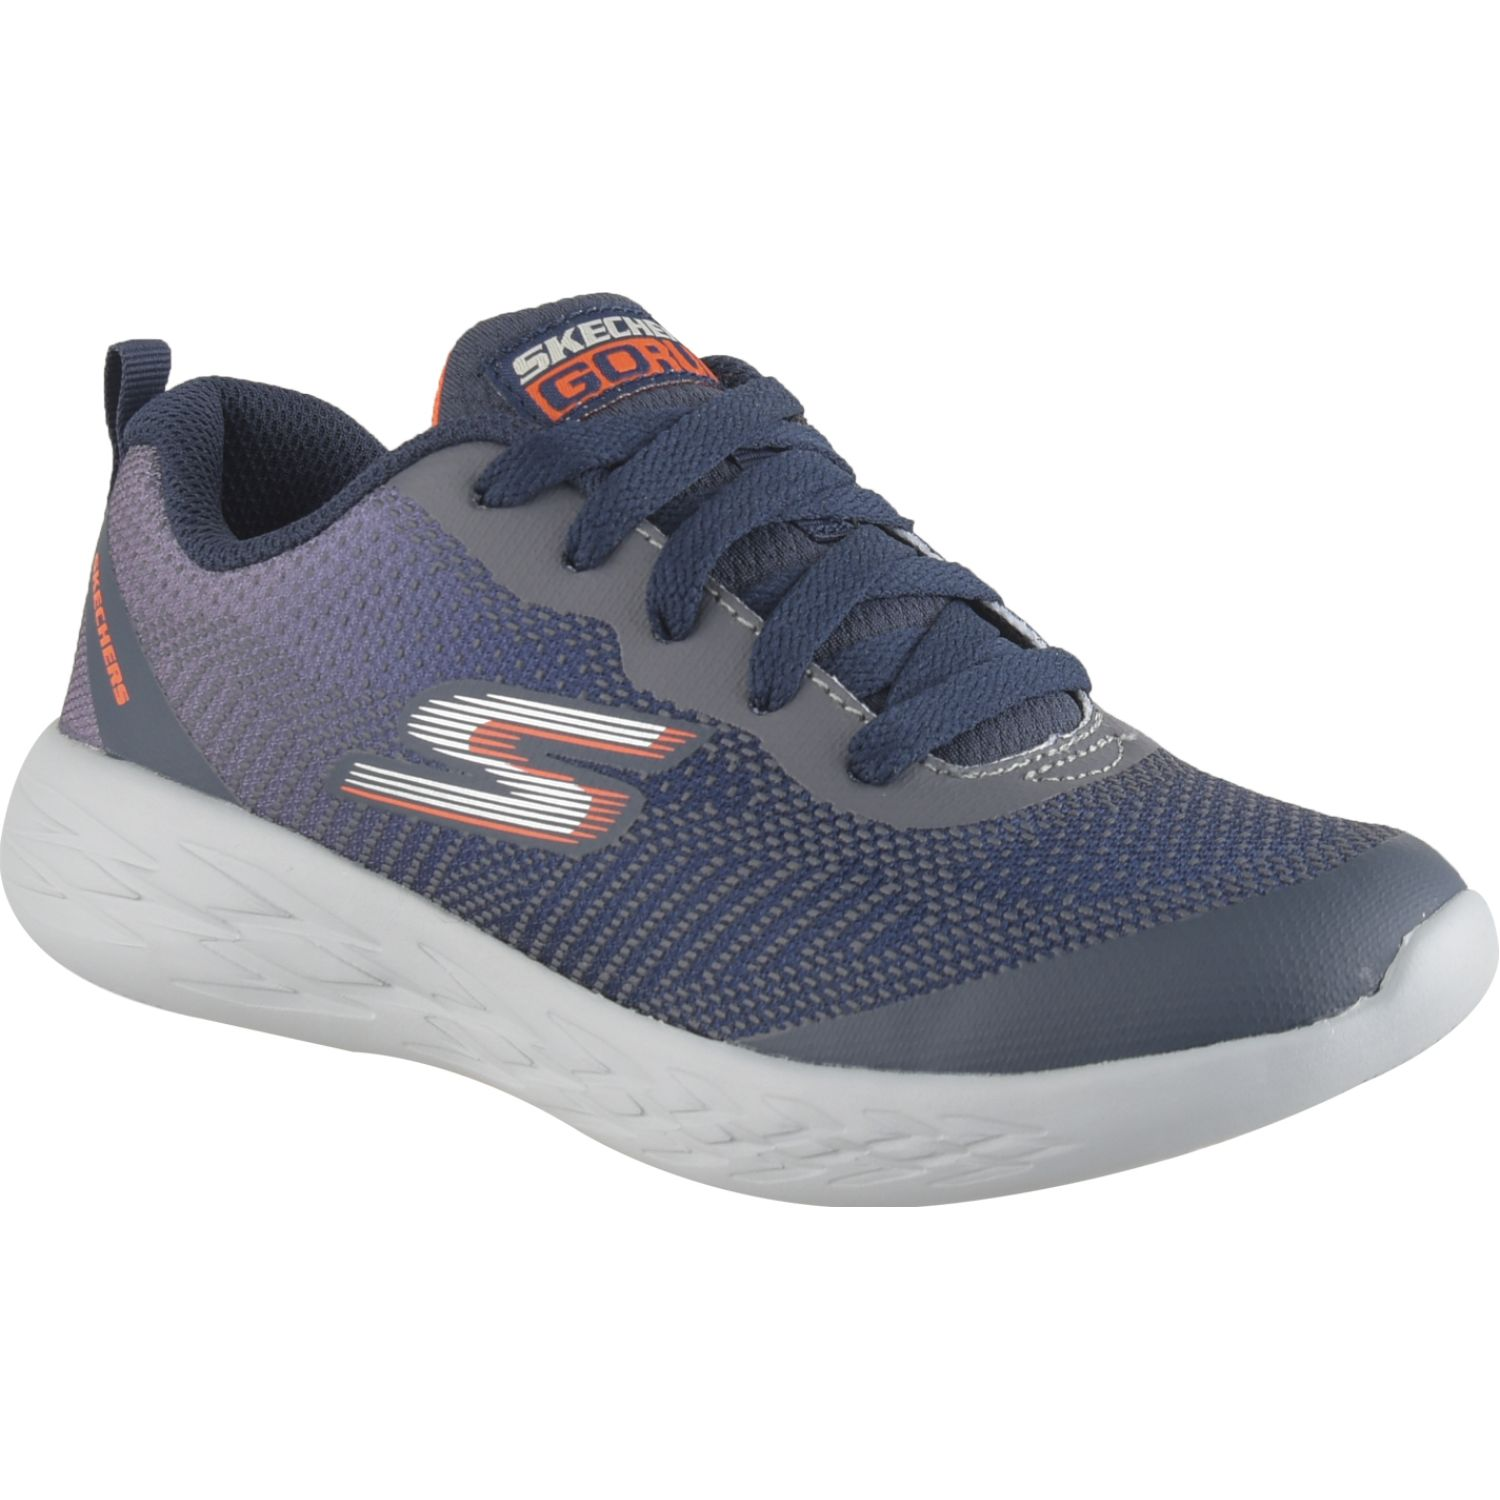 Skechers go run 600 - haddox Navy Walking